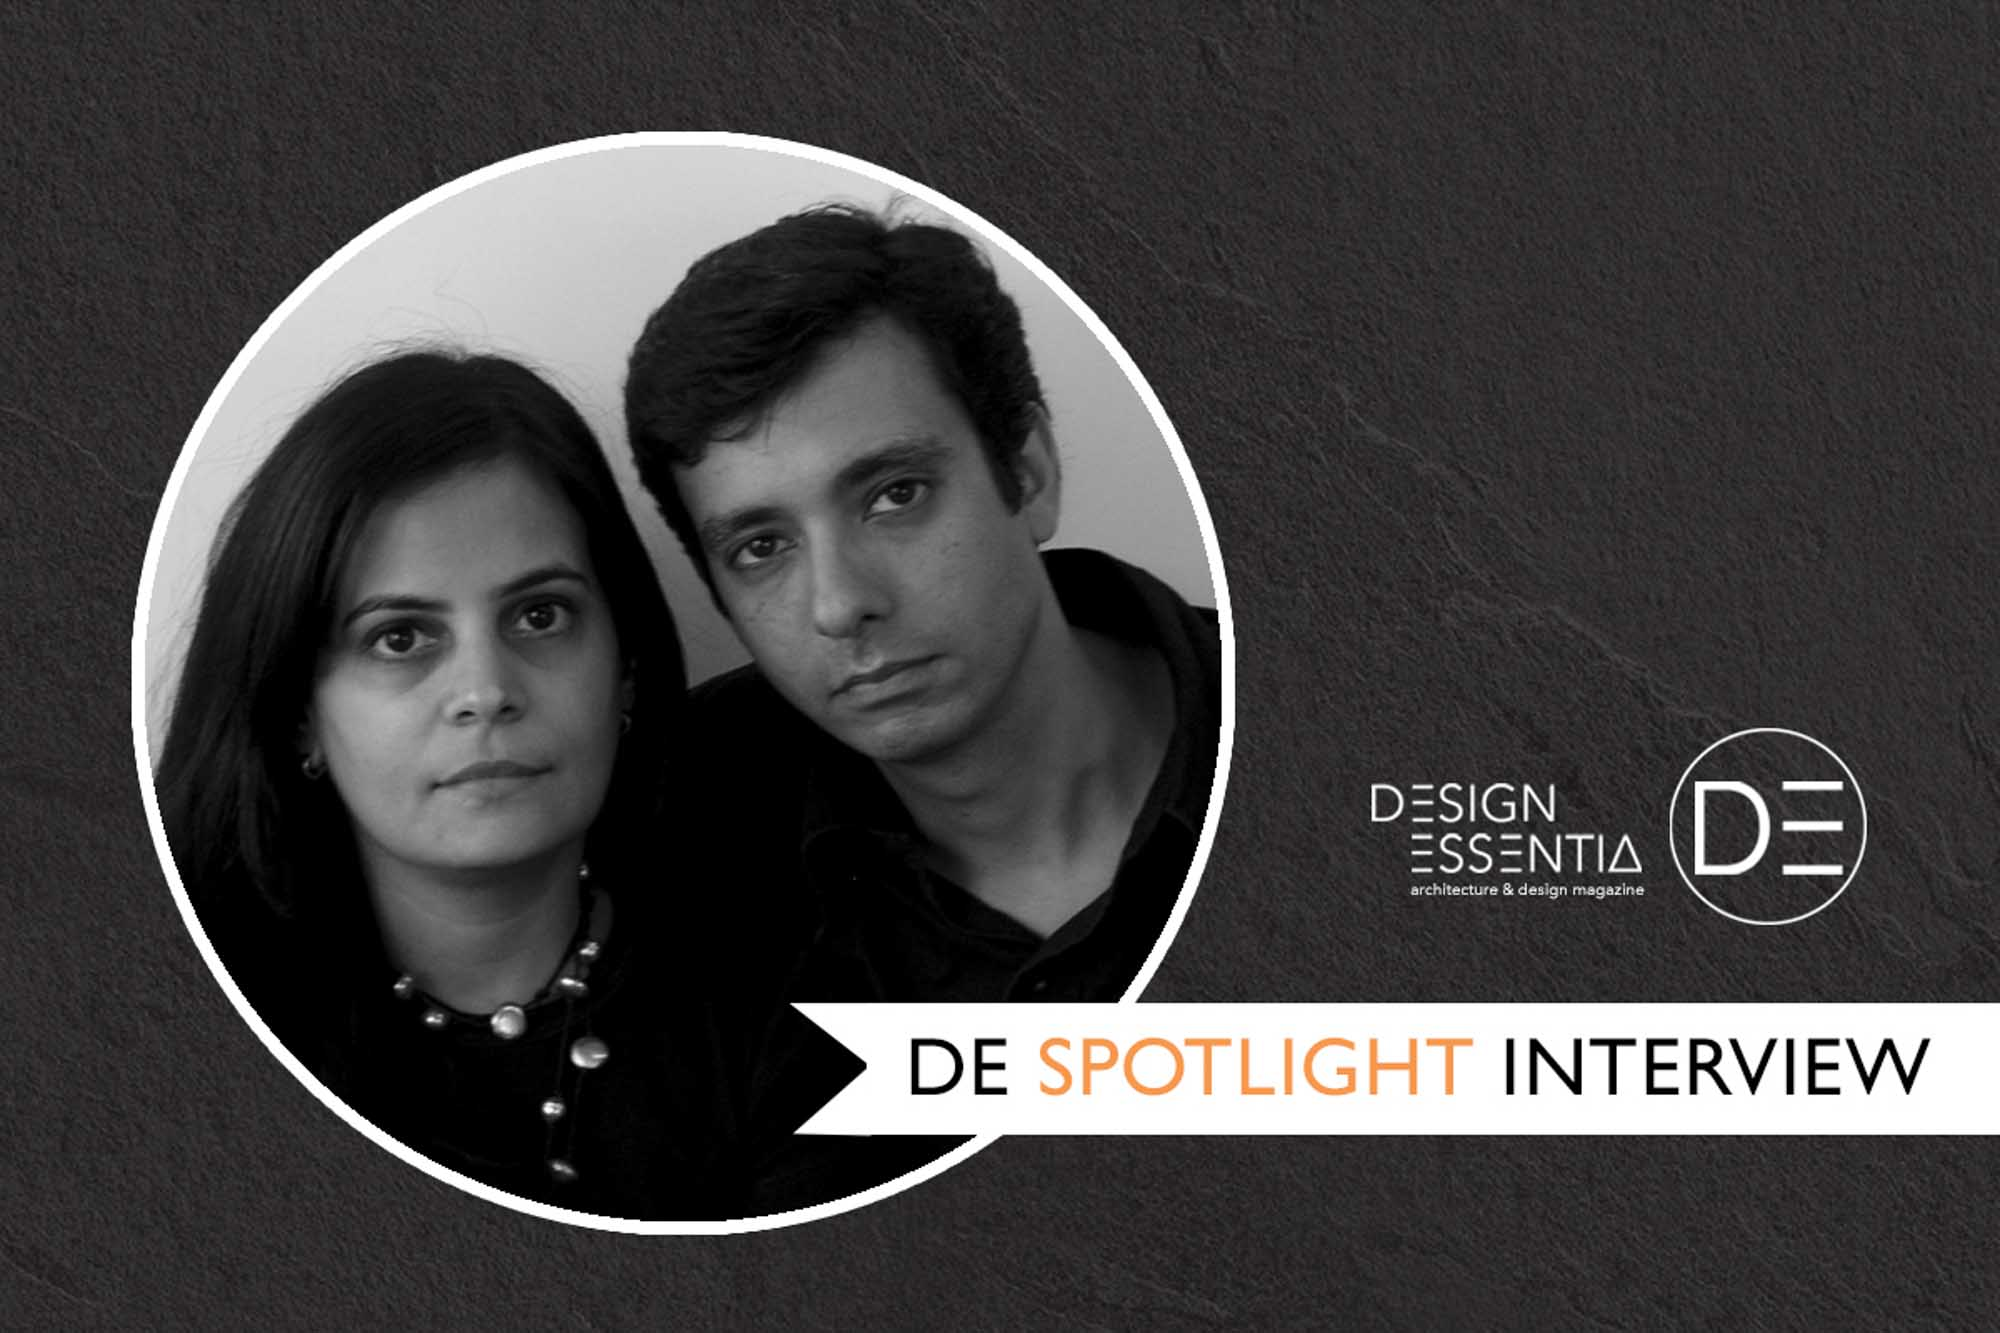 In conversation with architects Sanjeev Panjabi and Sangeeta Merchant.